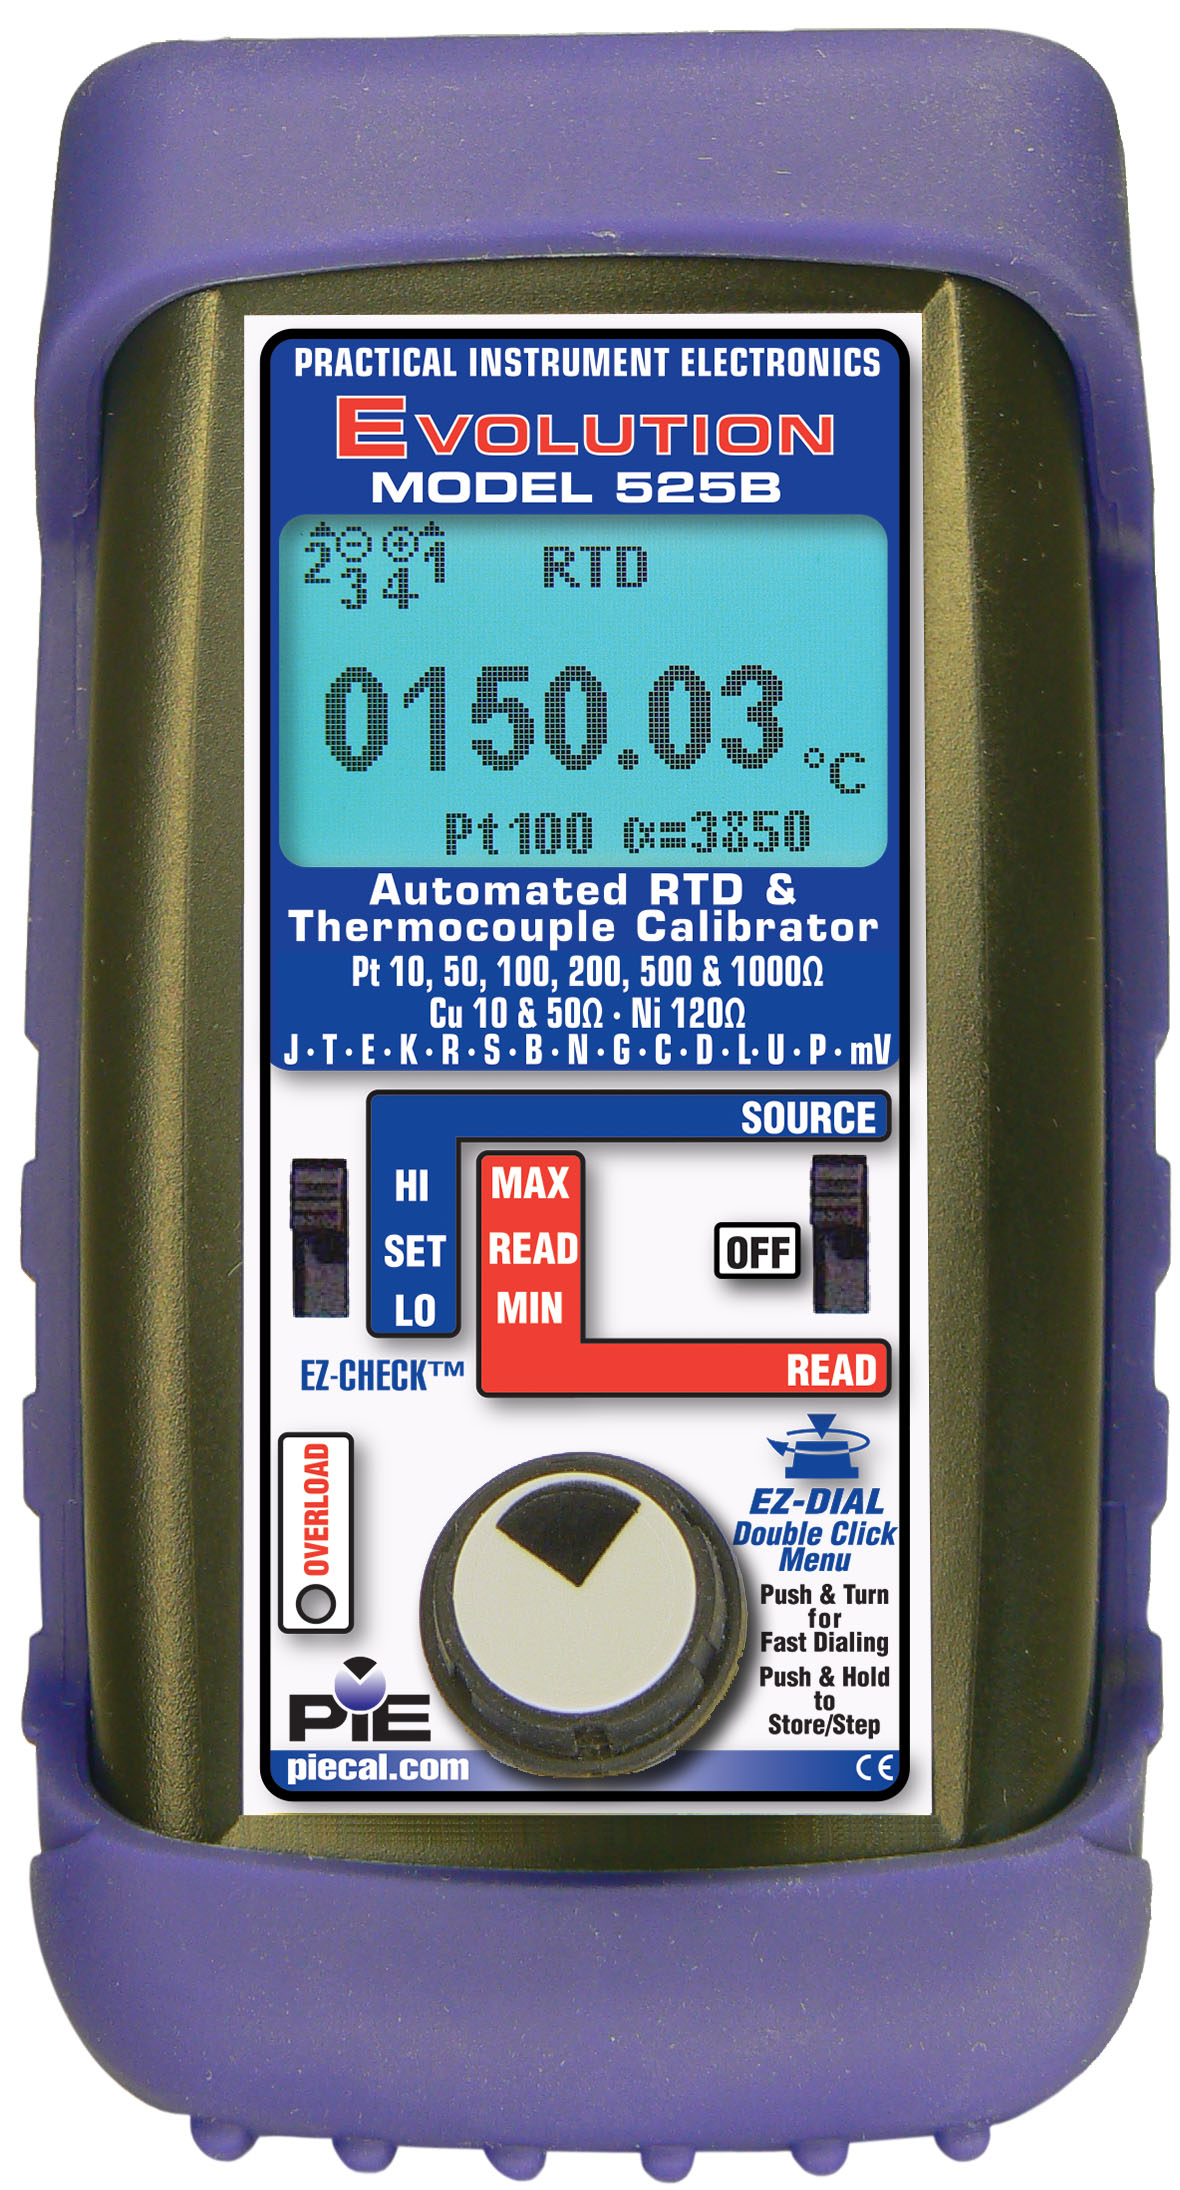 RTD & Thermocouple Calibrator PIE 525B | Advanced troubleshooting ...